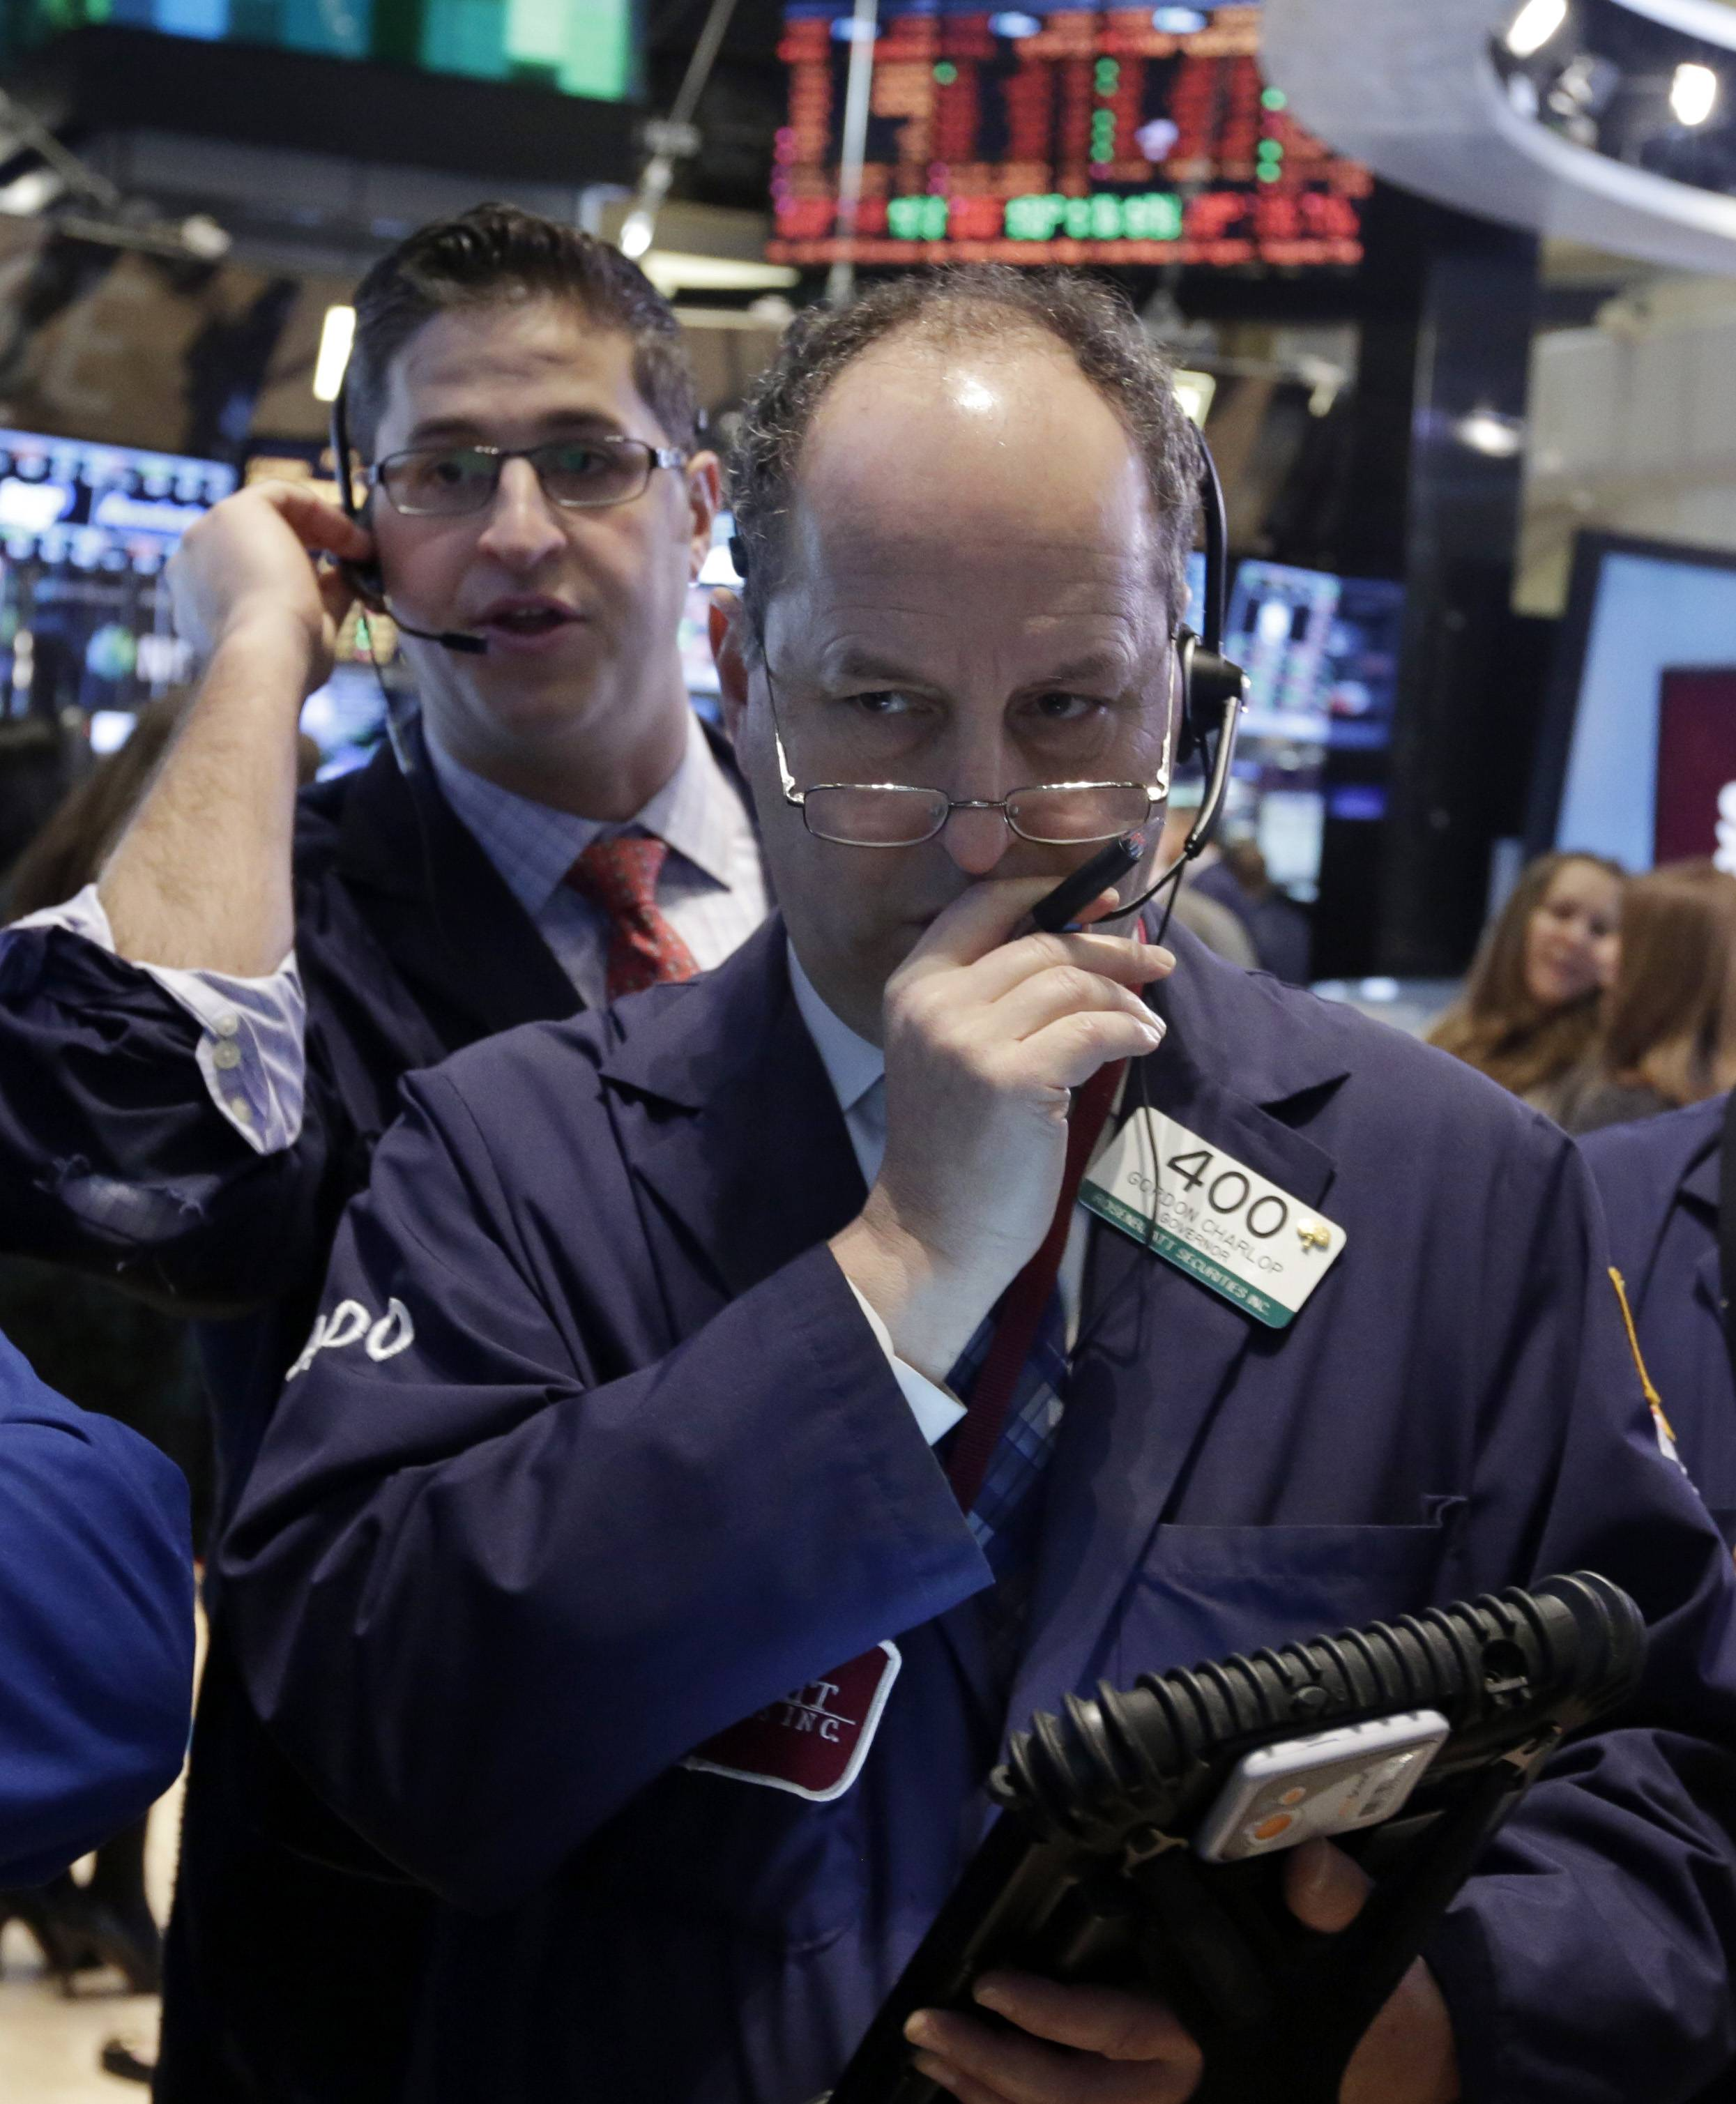 Stocks fell Wednesday, after the biggest four-day jump in a year for the Standard & Poor's 500 Index, as declines in companies from Procter & Gamble Co. to Amazon.com Inc. overshadowed optimism about economic growth.